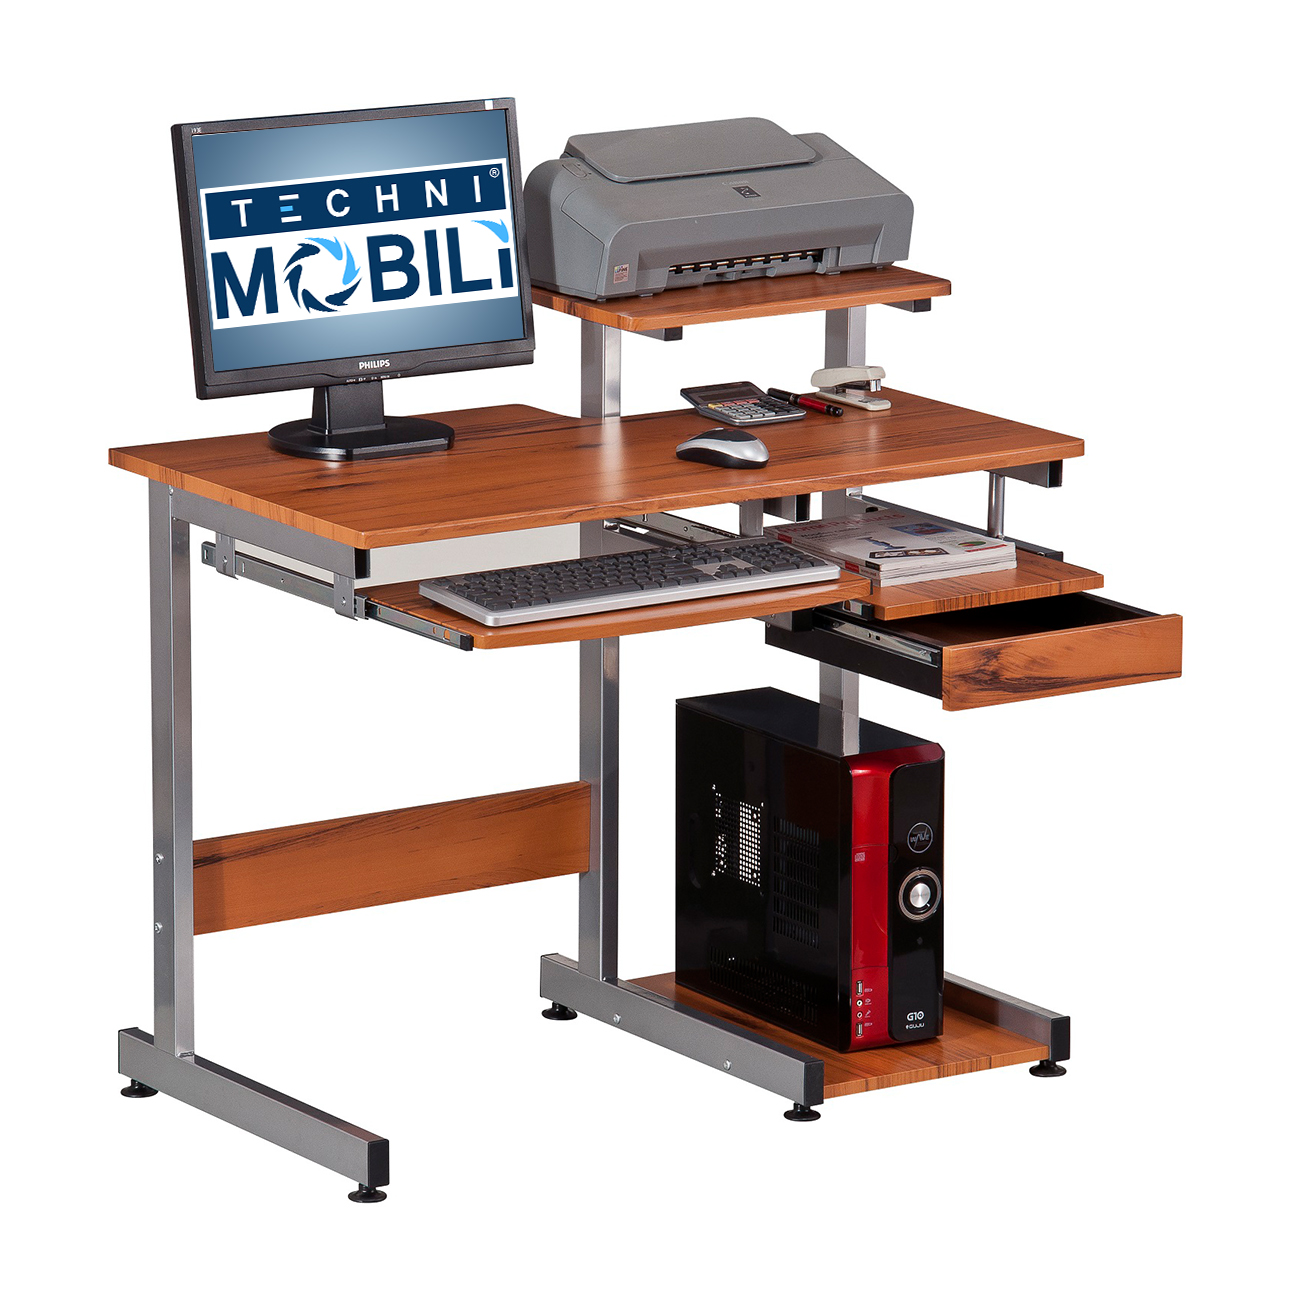 Techni Mobili Complete Computer Workstation Desk Ojcommerce